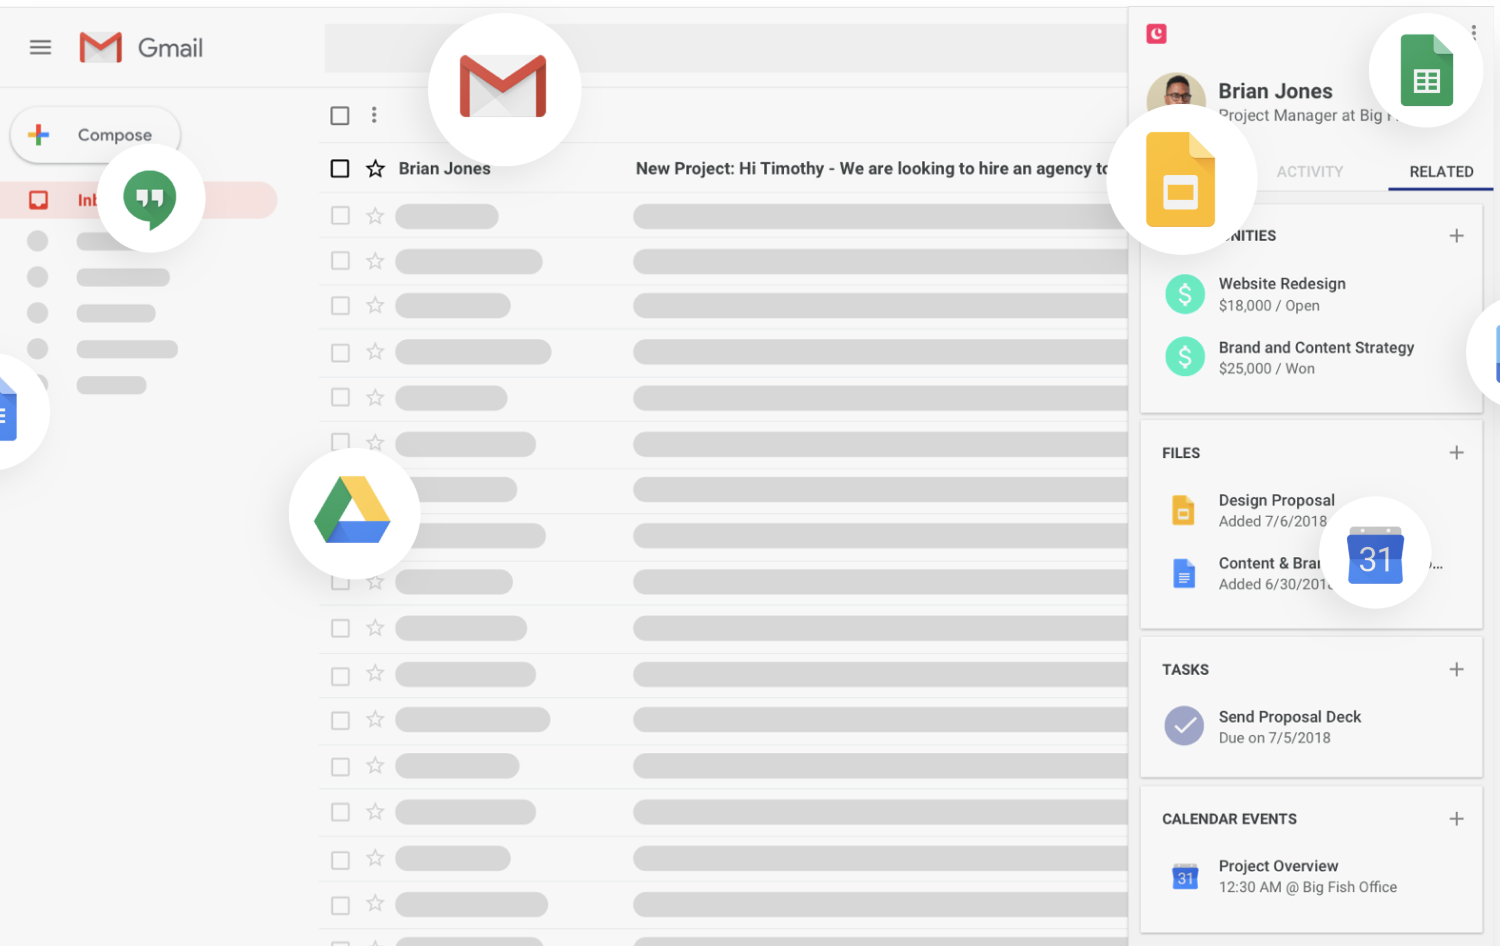 gmail inbox example